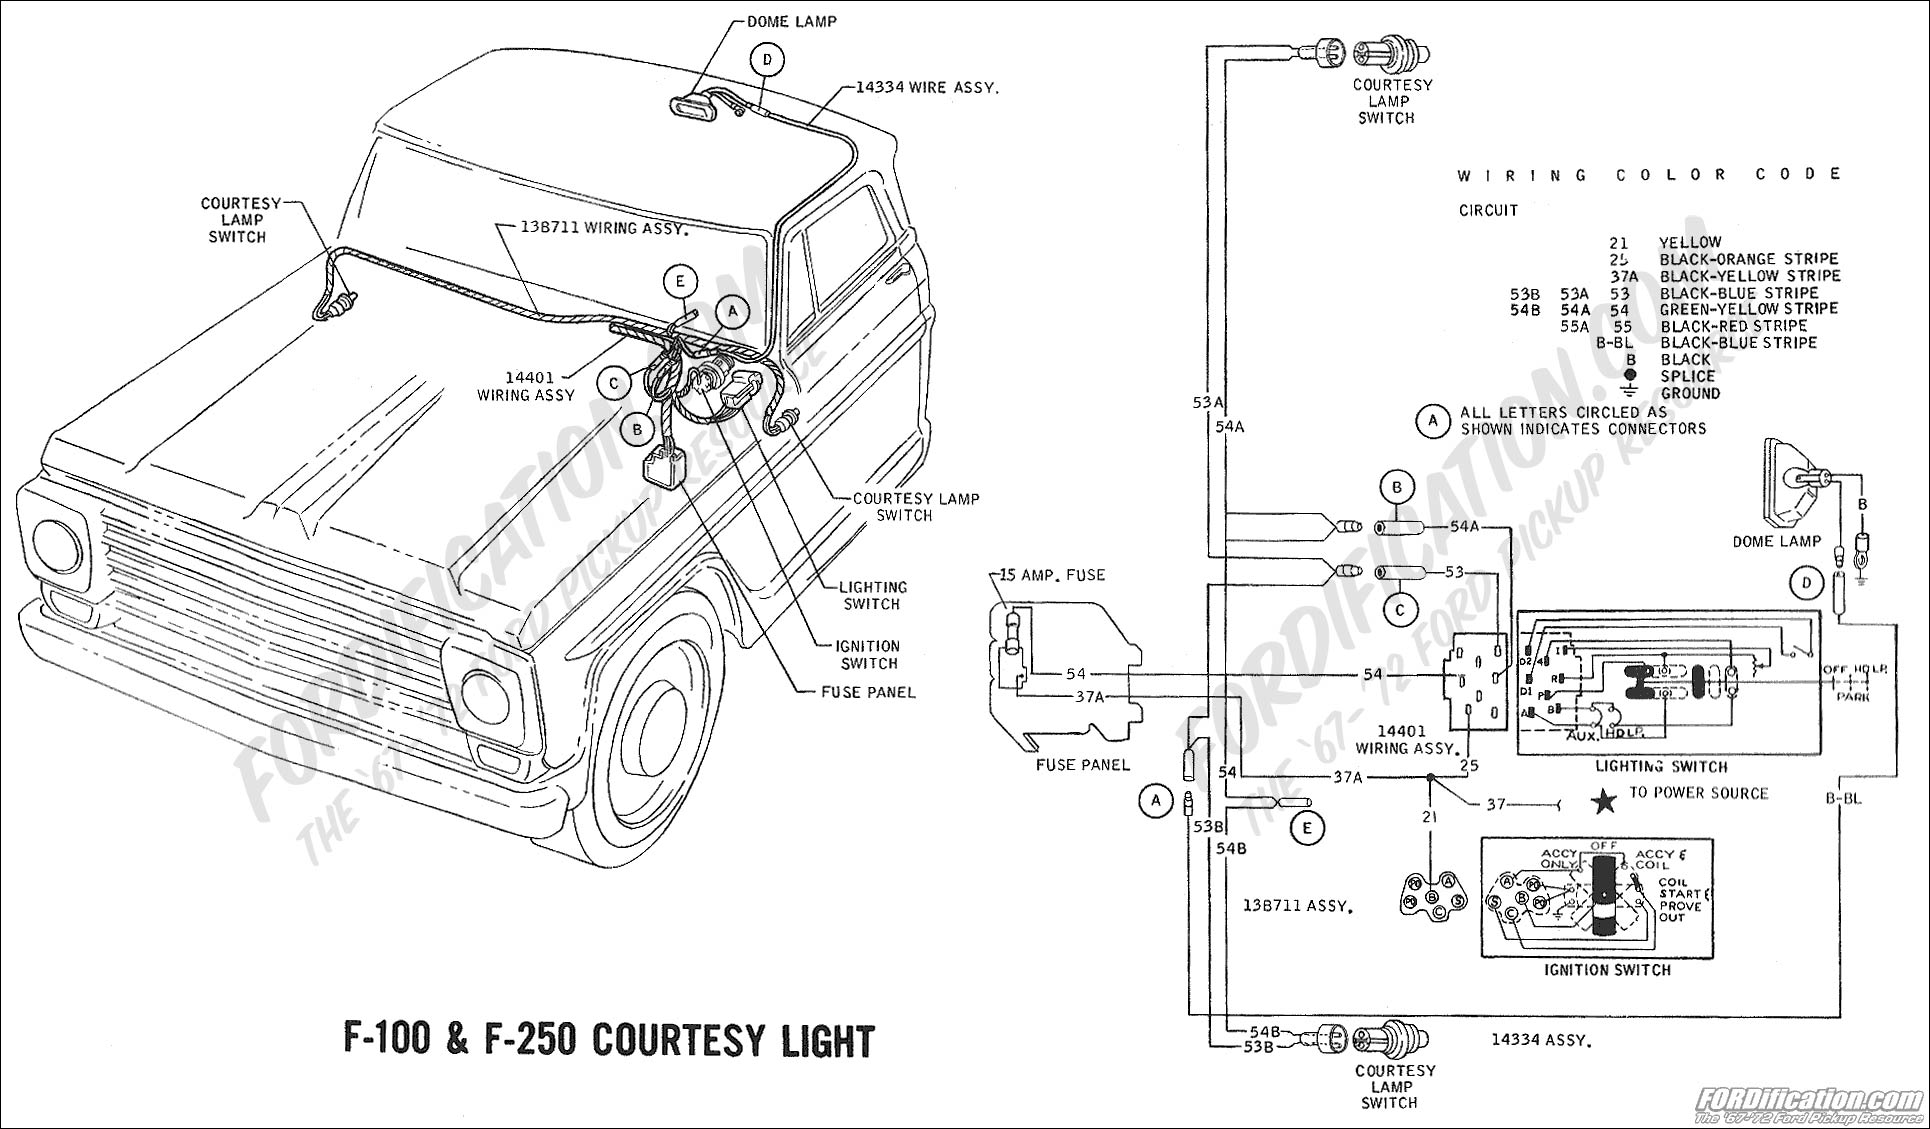 1968 Camaro Tail Lights Diagram. Diagram. Wiring Diagram